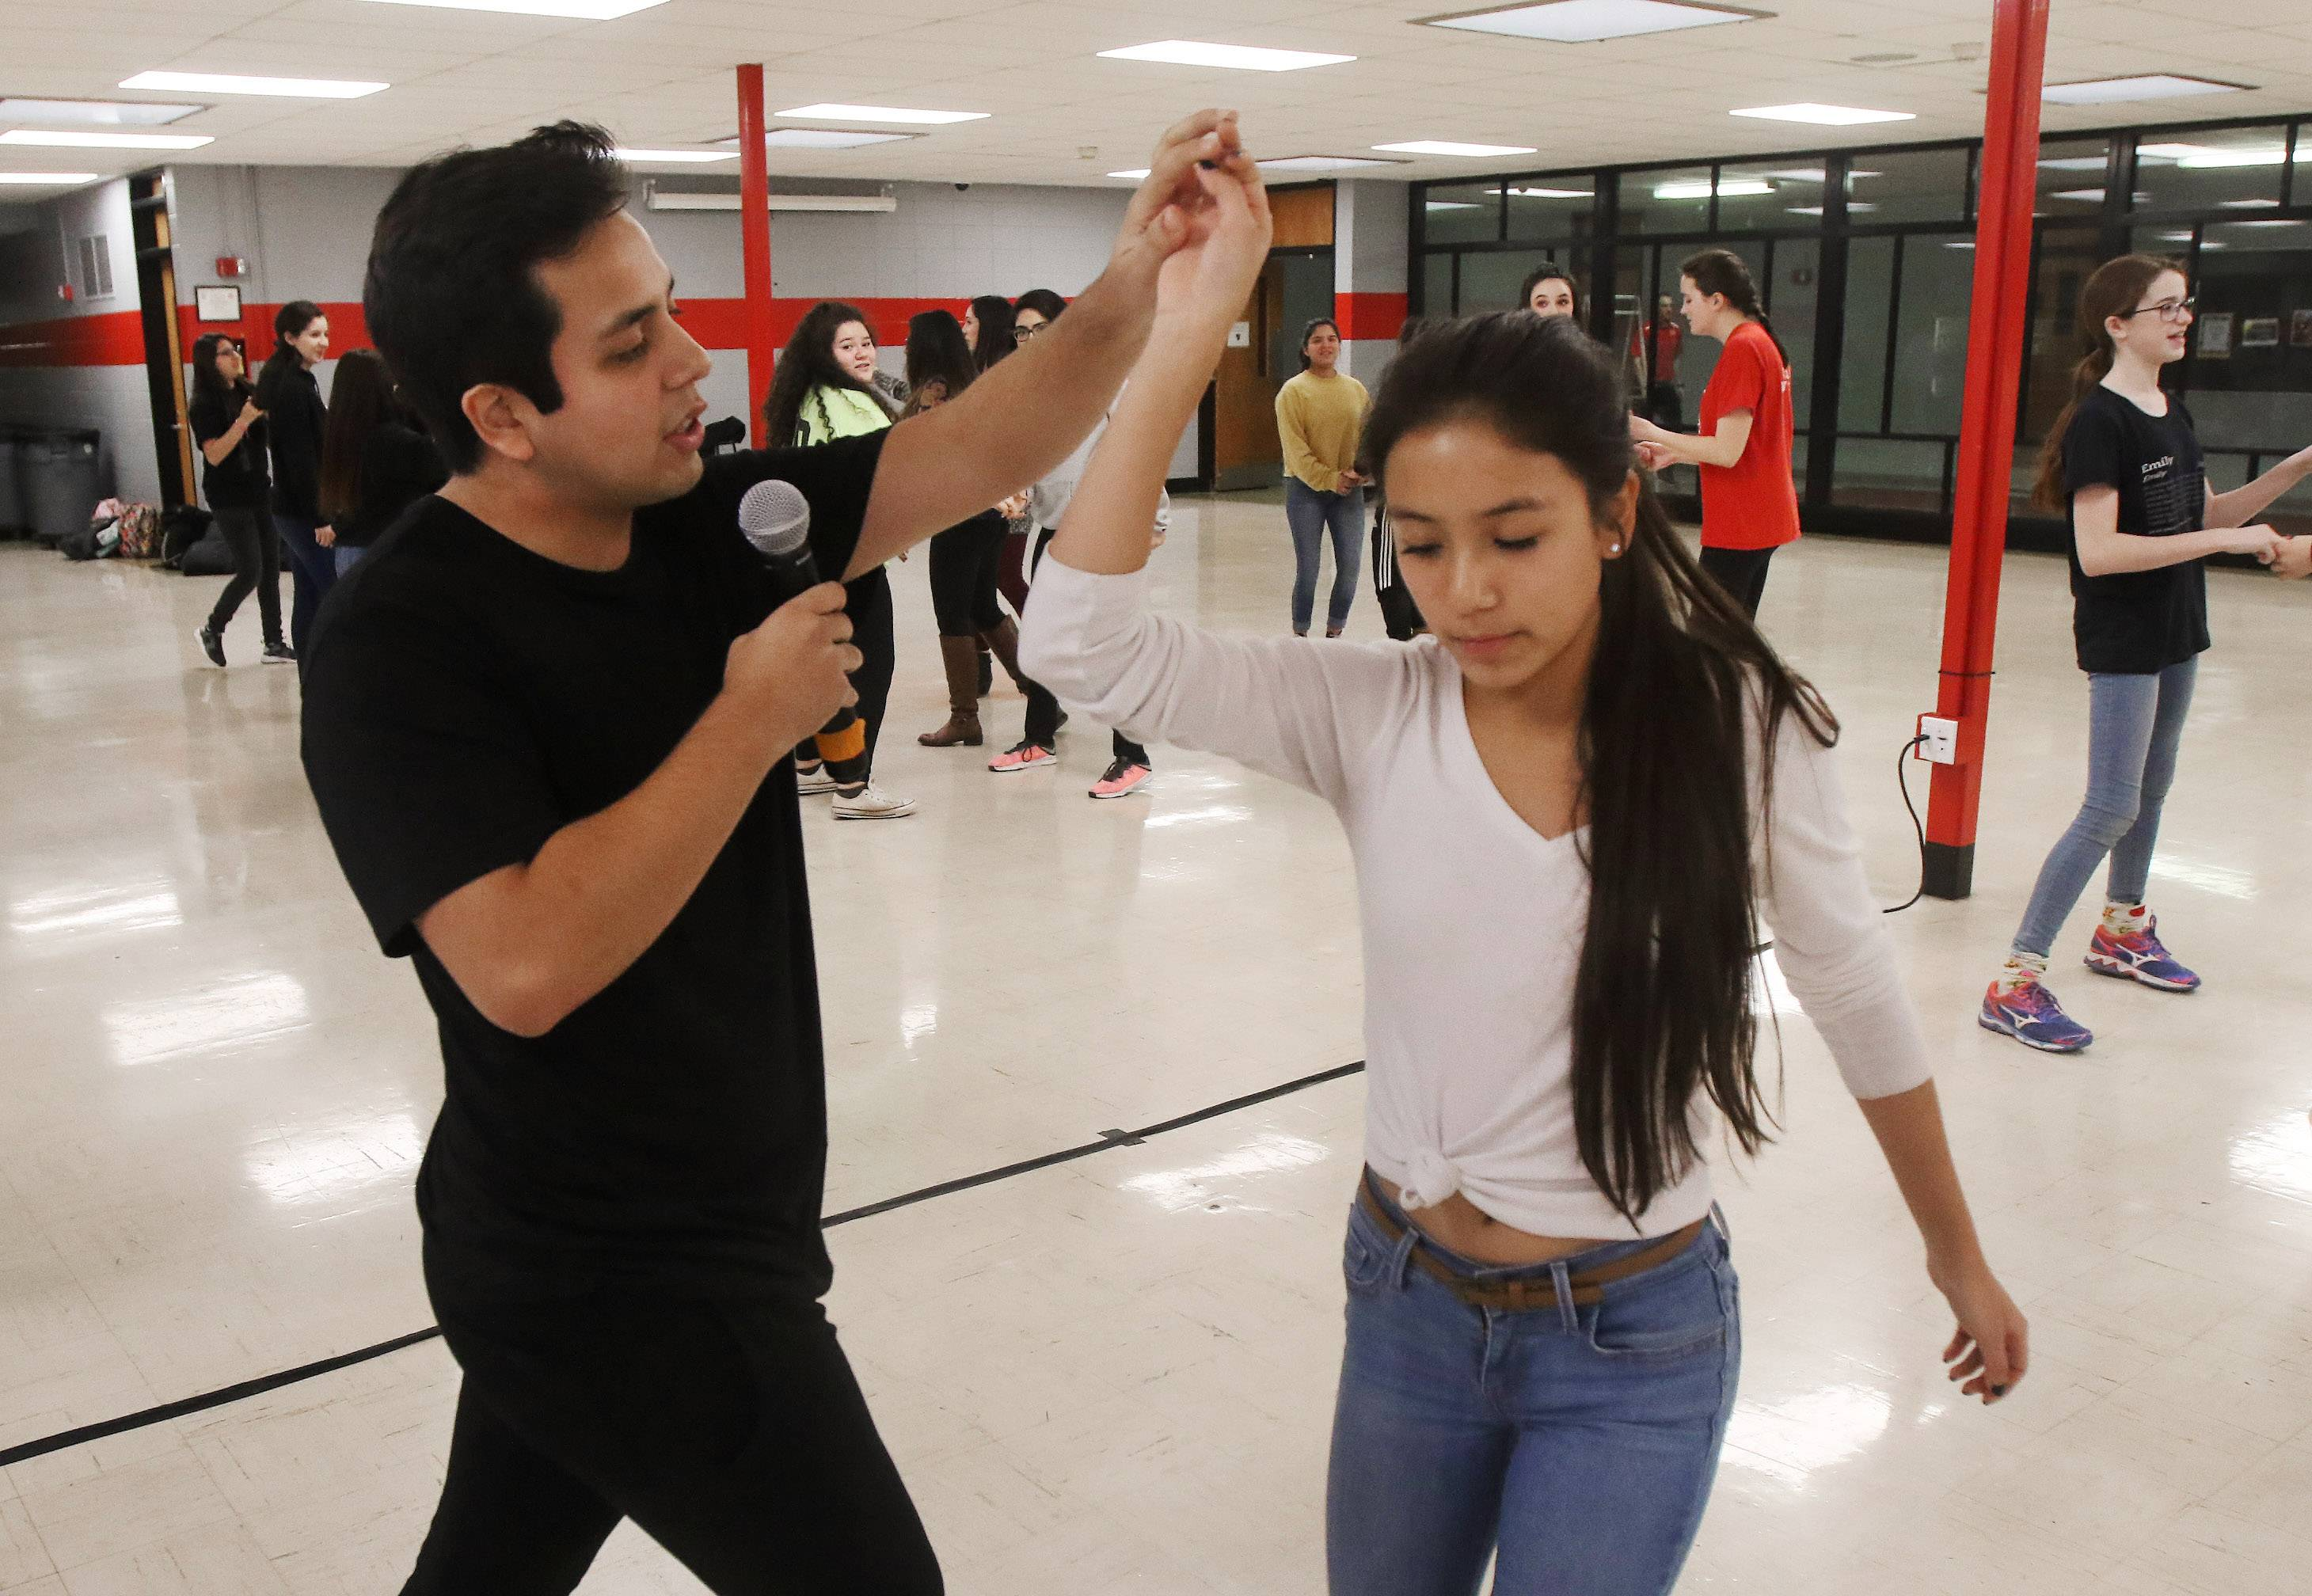 Former student Jason Jimenez demonstrates a dance move with his sister, Jeanelle, during the Latin dance workshop Tuesday at Mundelein High School. Members of the Puertas Latin Culture Club and the Student Leadership Organization provided lessons in preparation for the first Latin school dance on March 17.